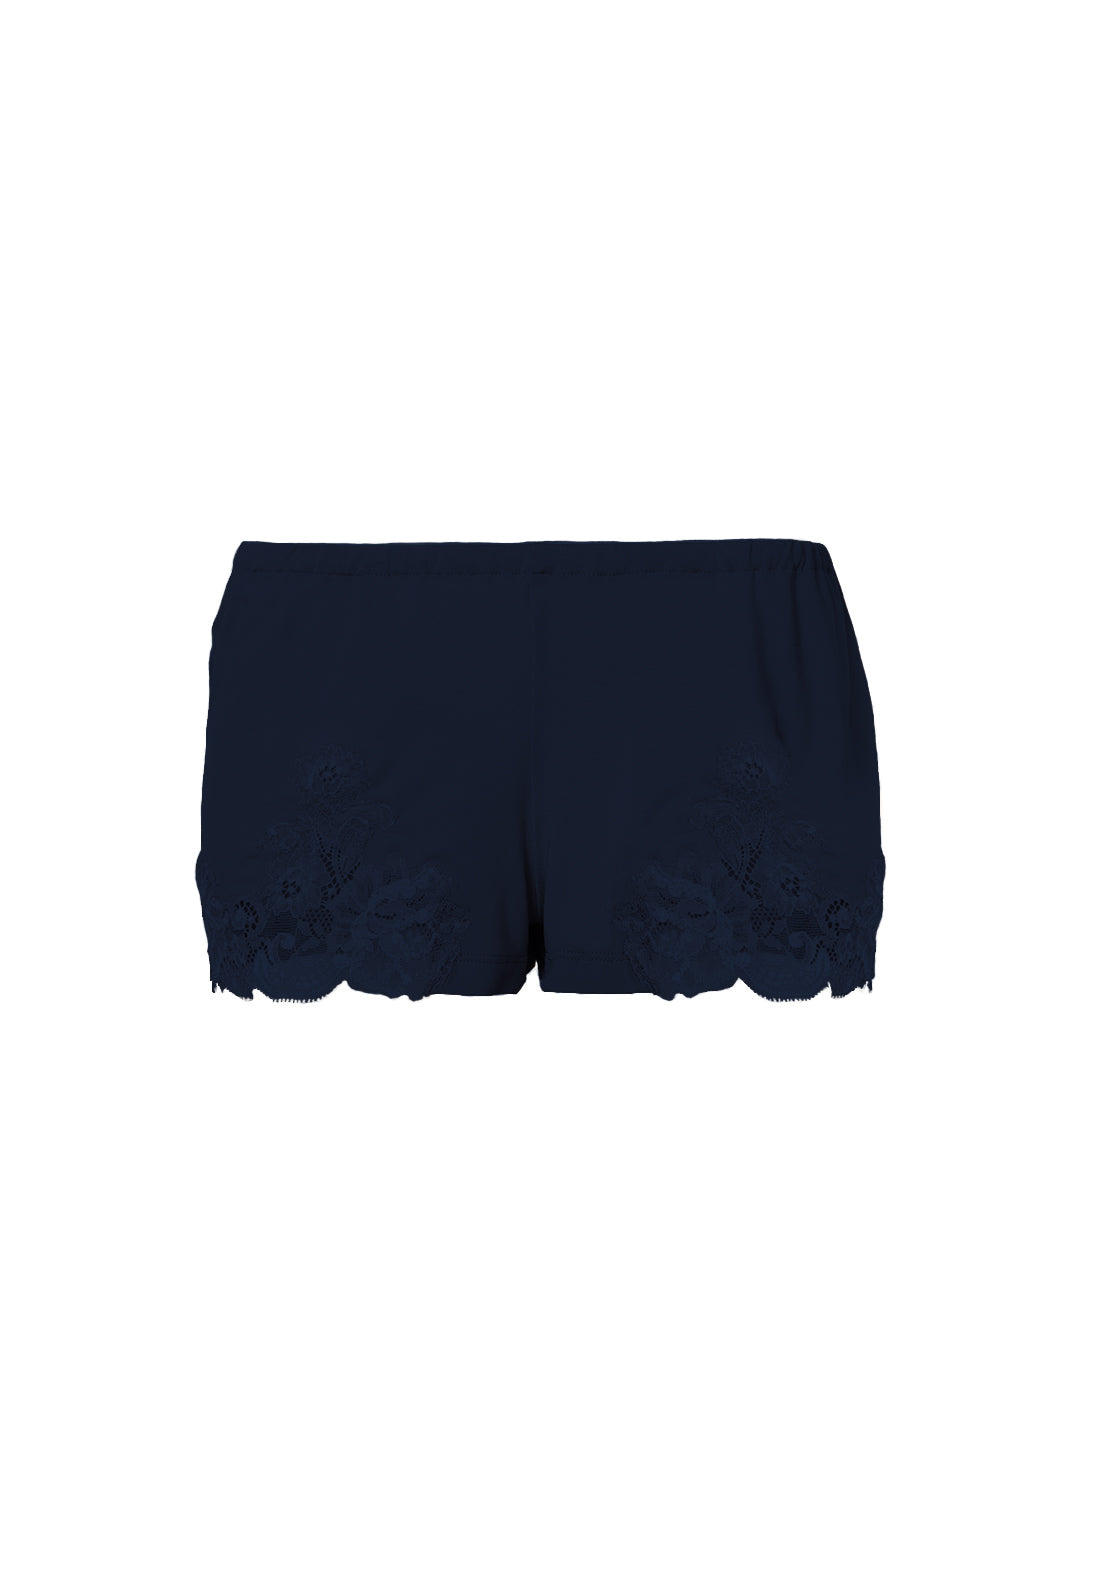 Isolde Shorts in Navy Blue - I.D. Sarrieri